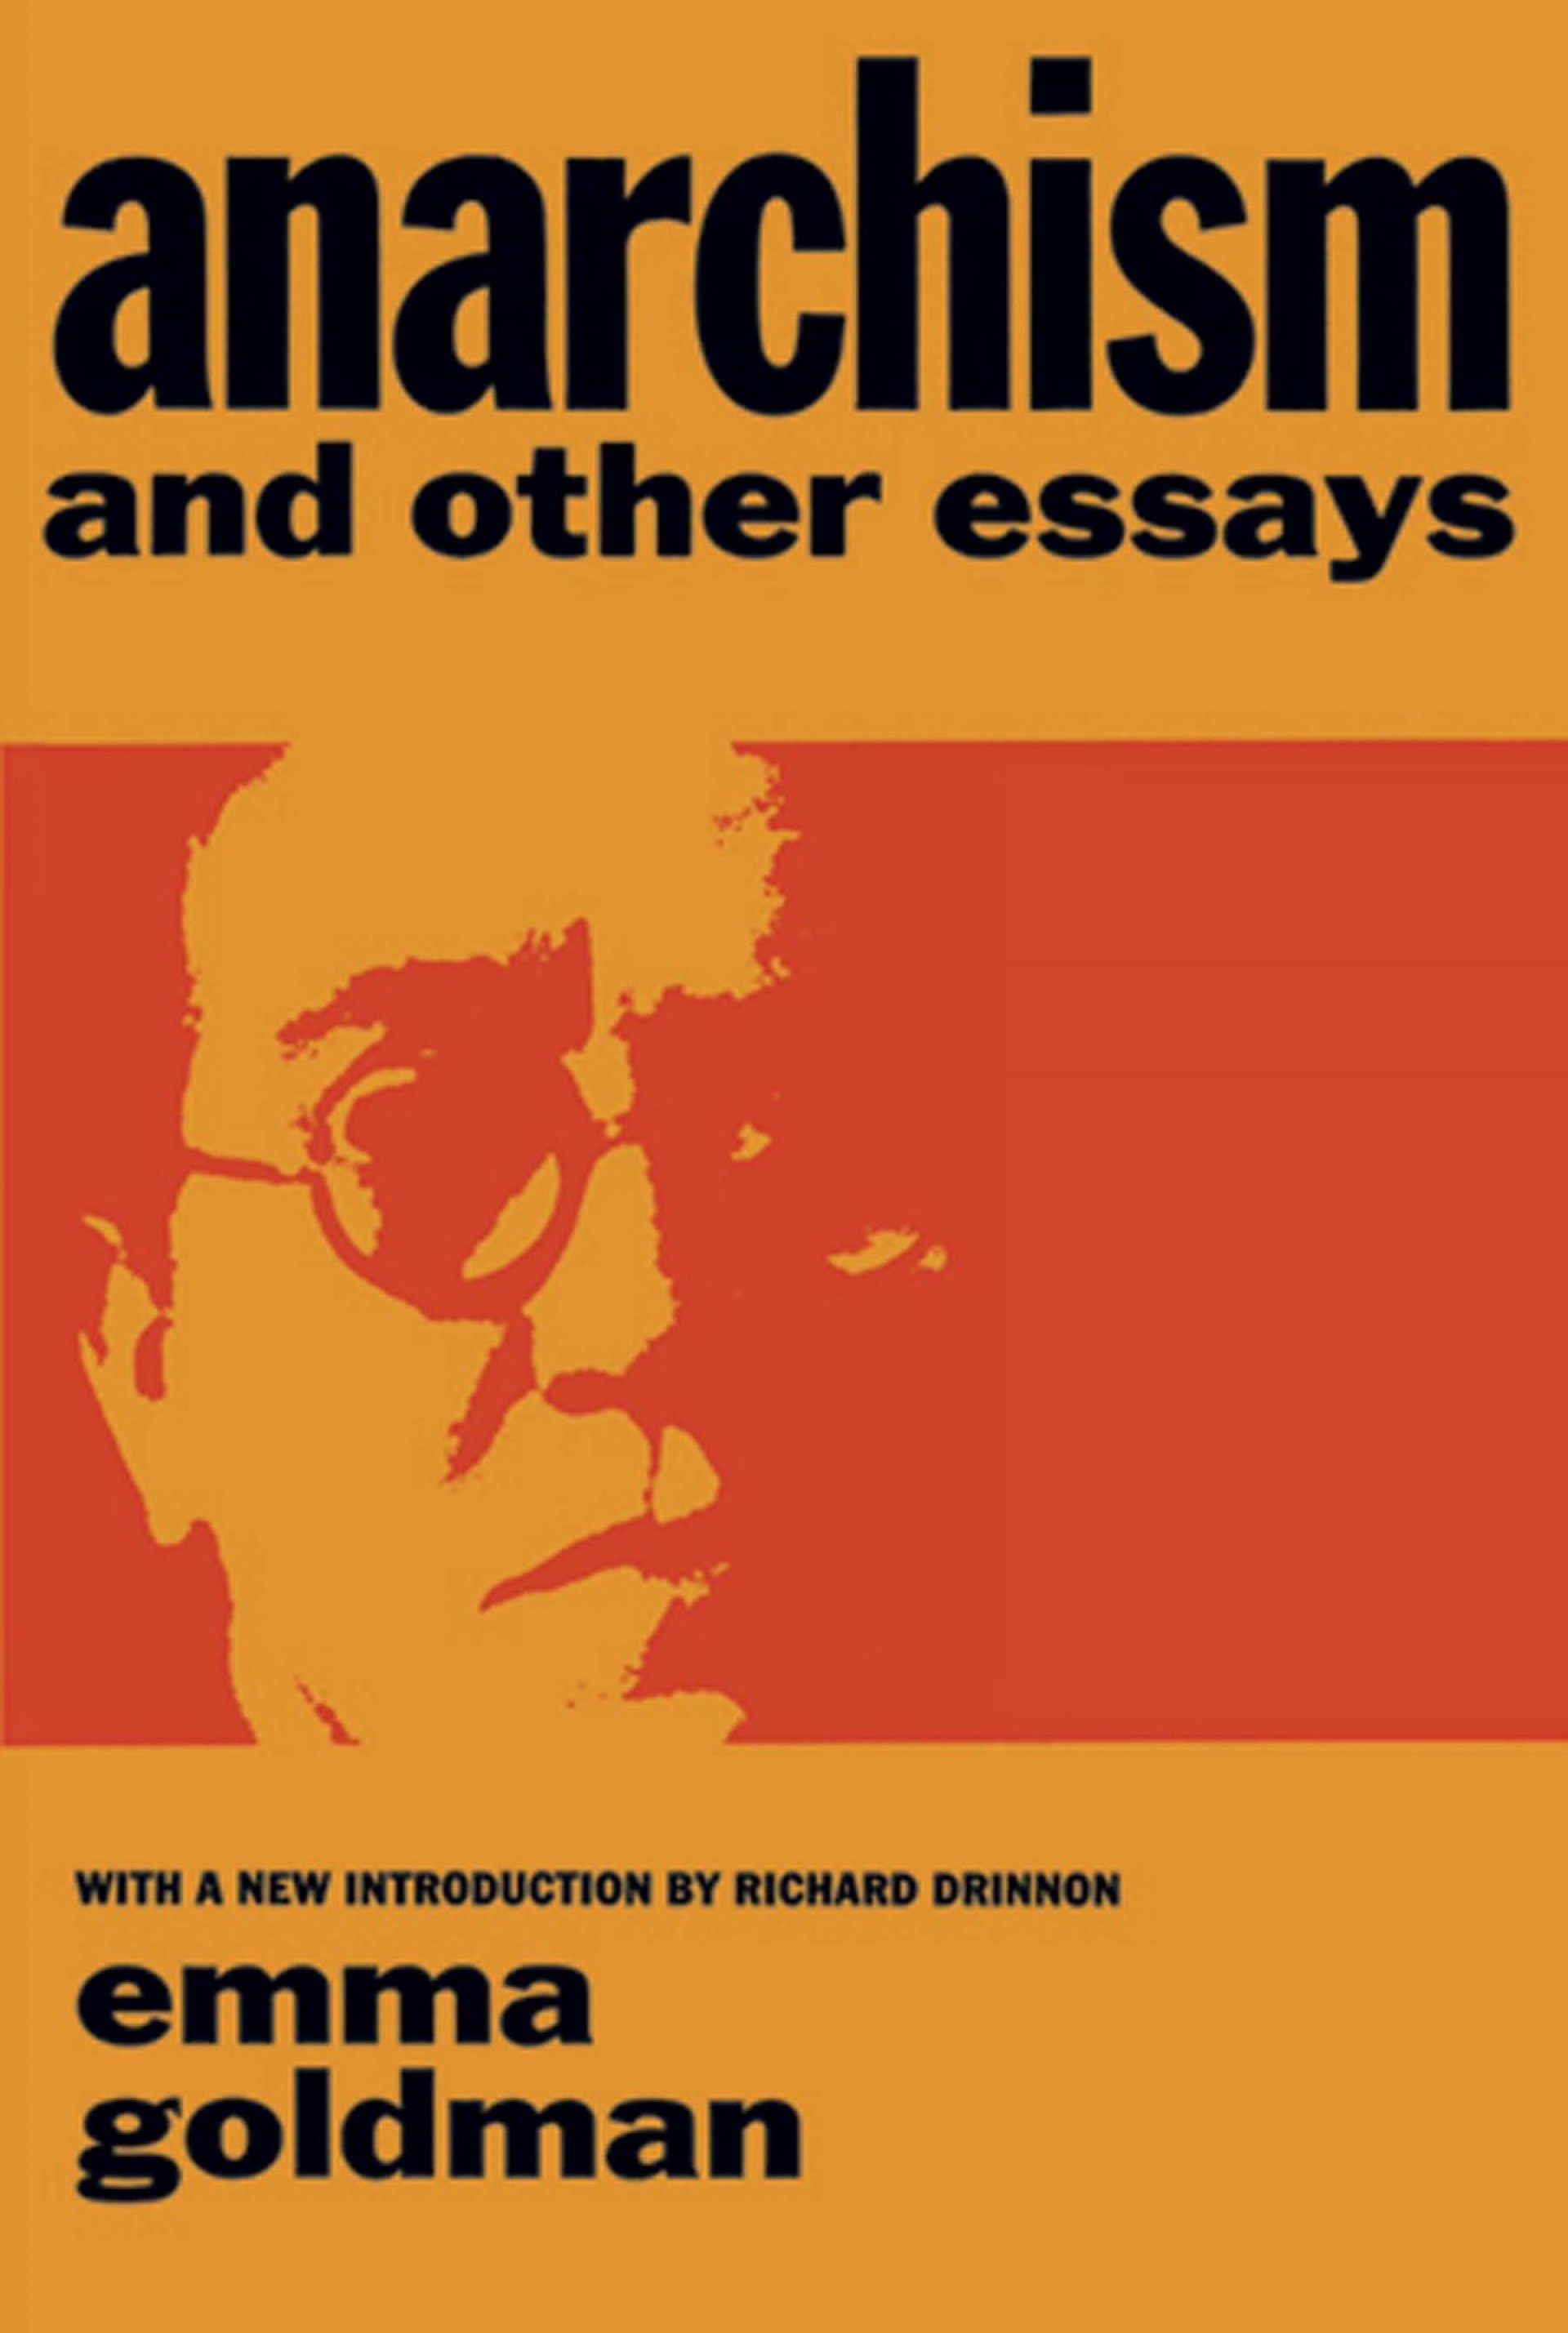 001 Essay Example Anarchism And Other Essays Incredible Emma Goldman Summary Pdf 1920